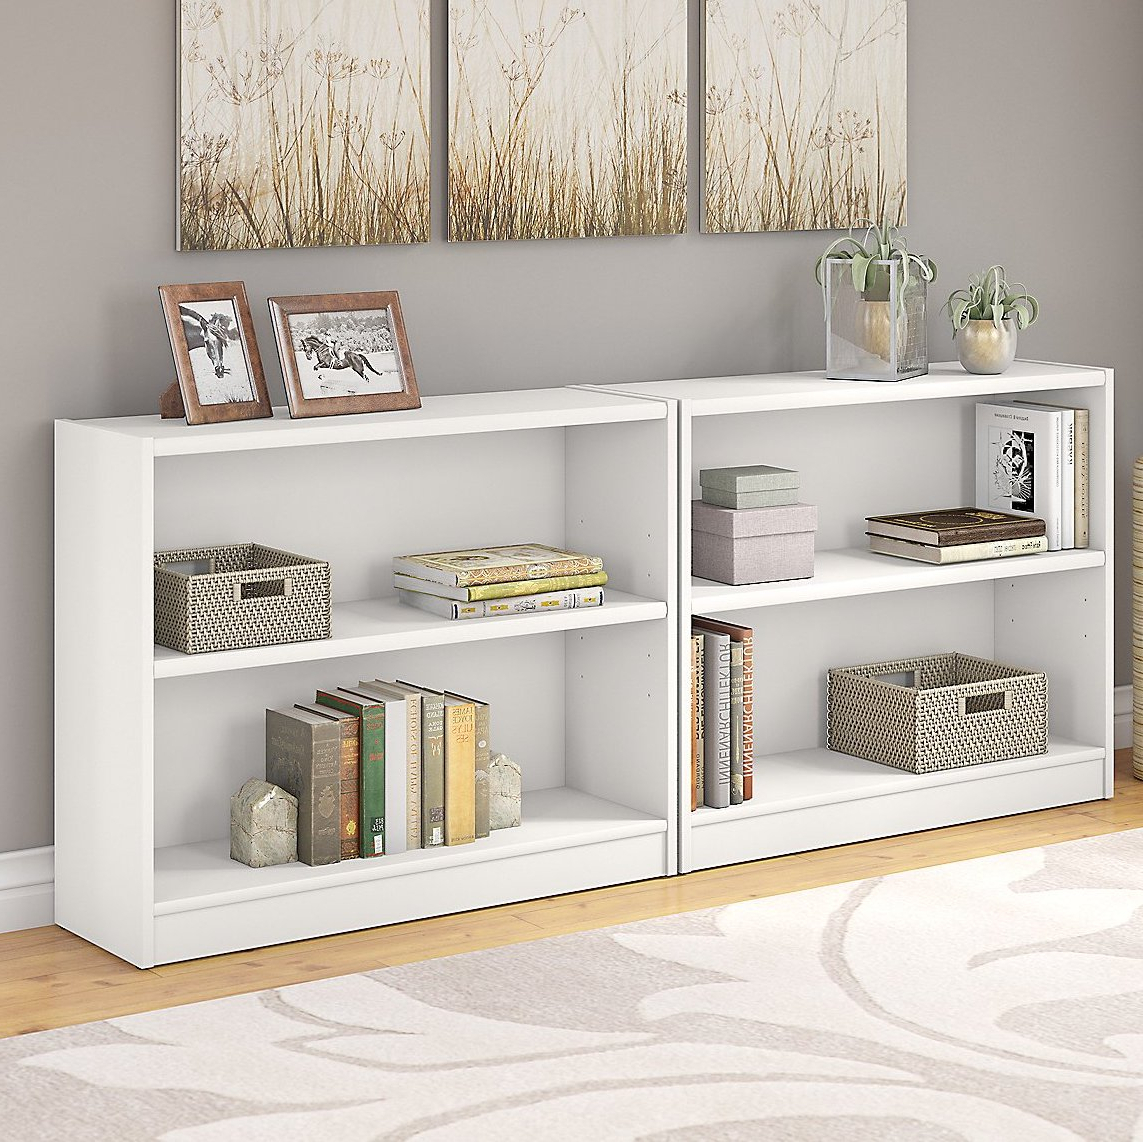 Morrell Standard Bookcase Throughout Favorite Kirkbride Standard Bookcases (View 15 of 20)